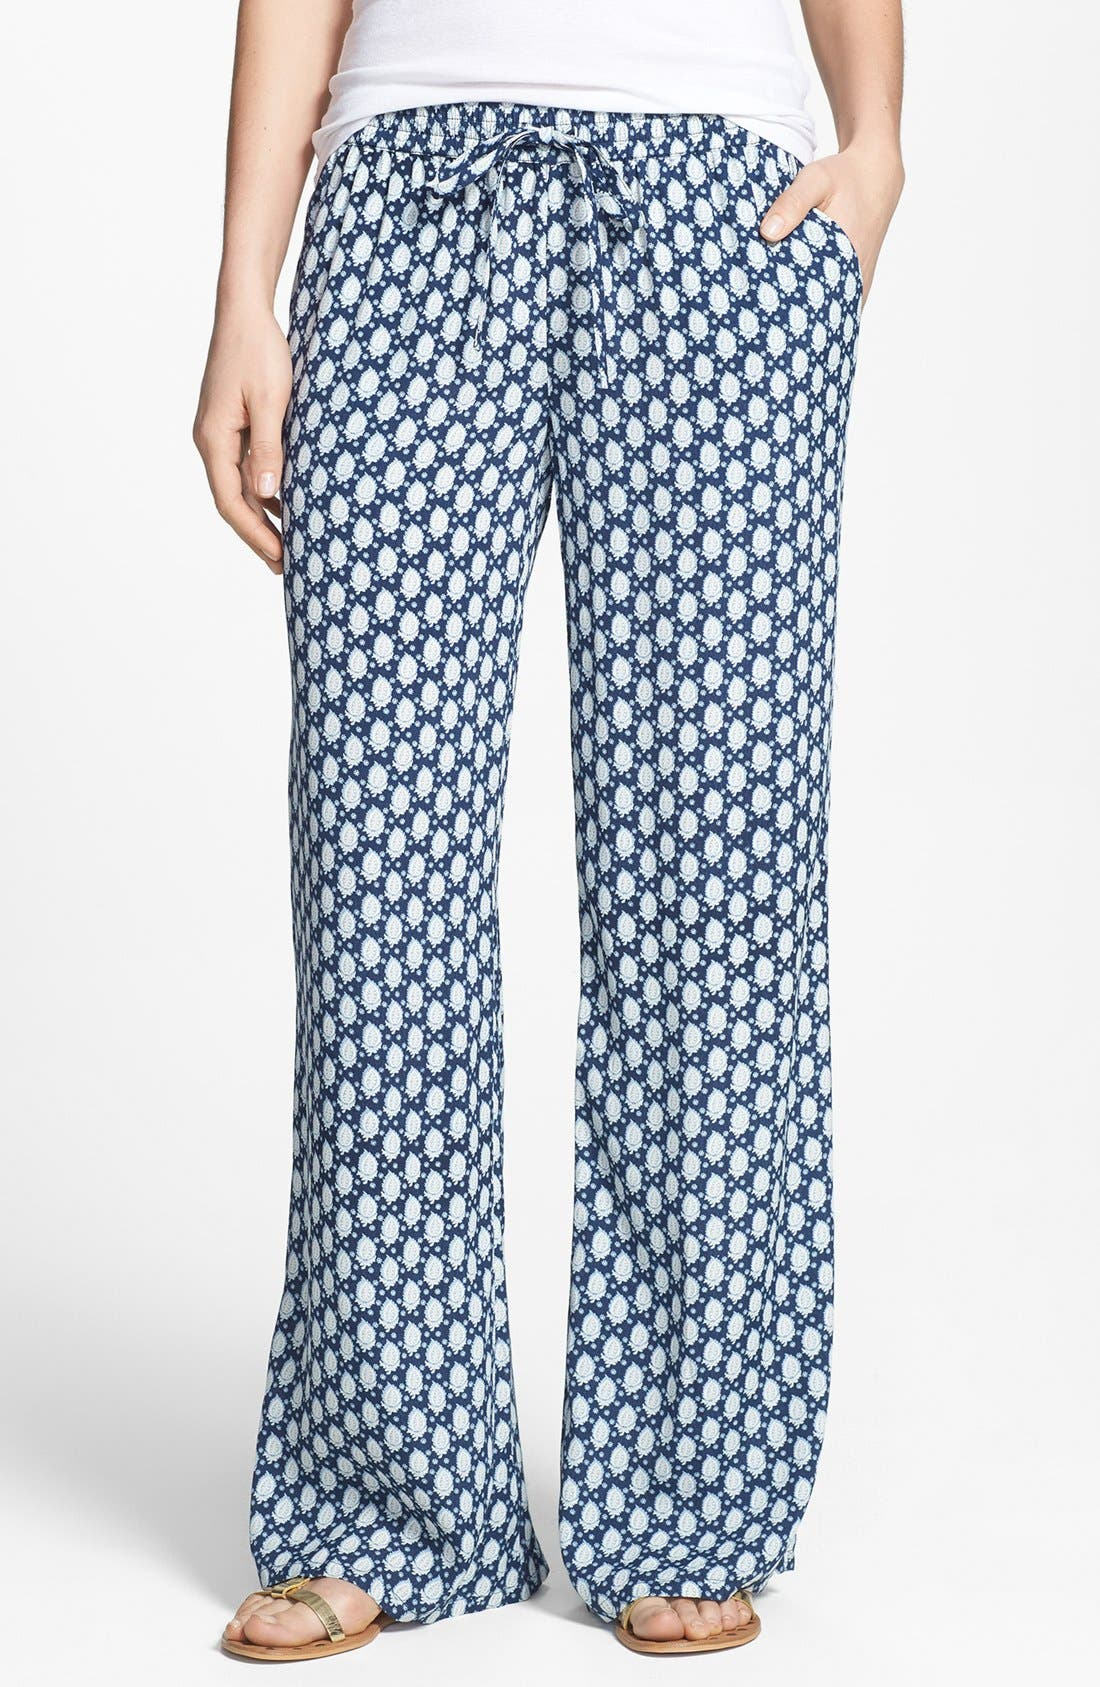 Alternate Image 1 Selected - Soft Joie Floral Pattern Pants